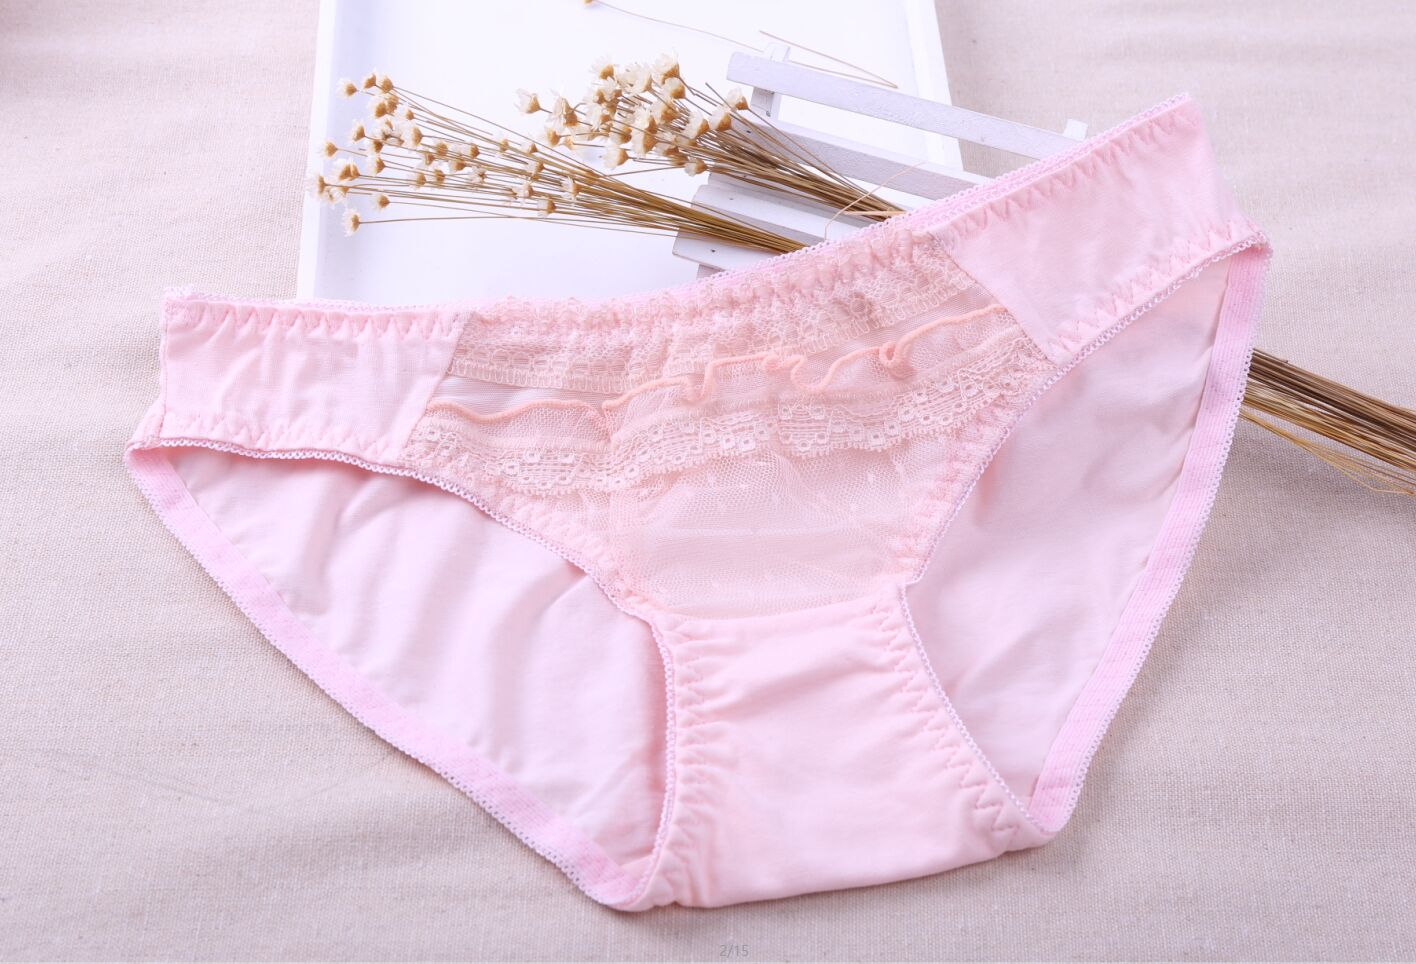 New Arrival Super Soft Seamless Women Cotton Underwear